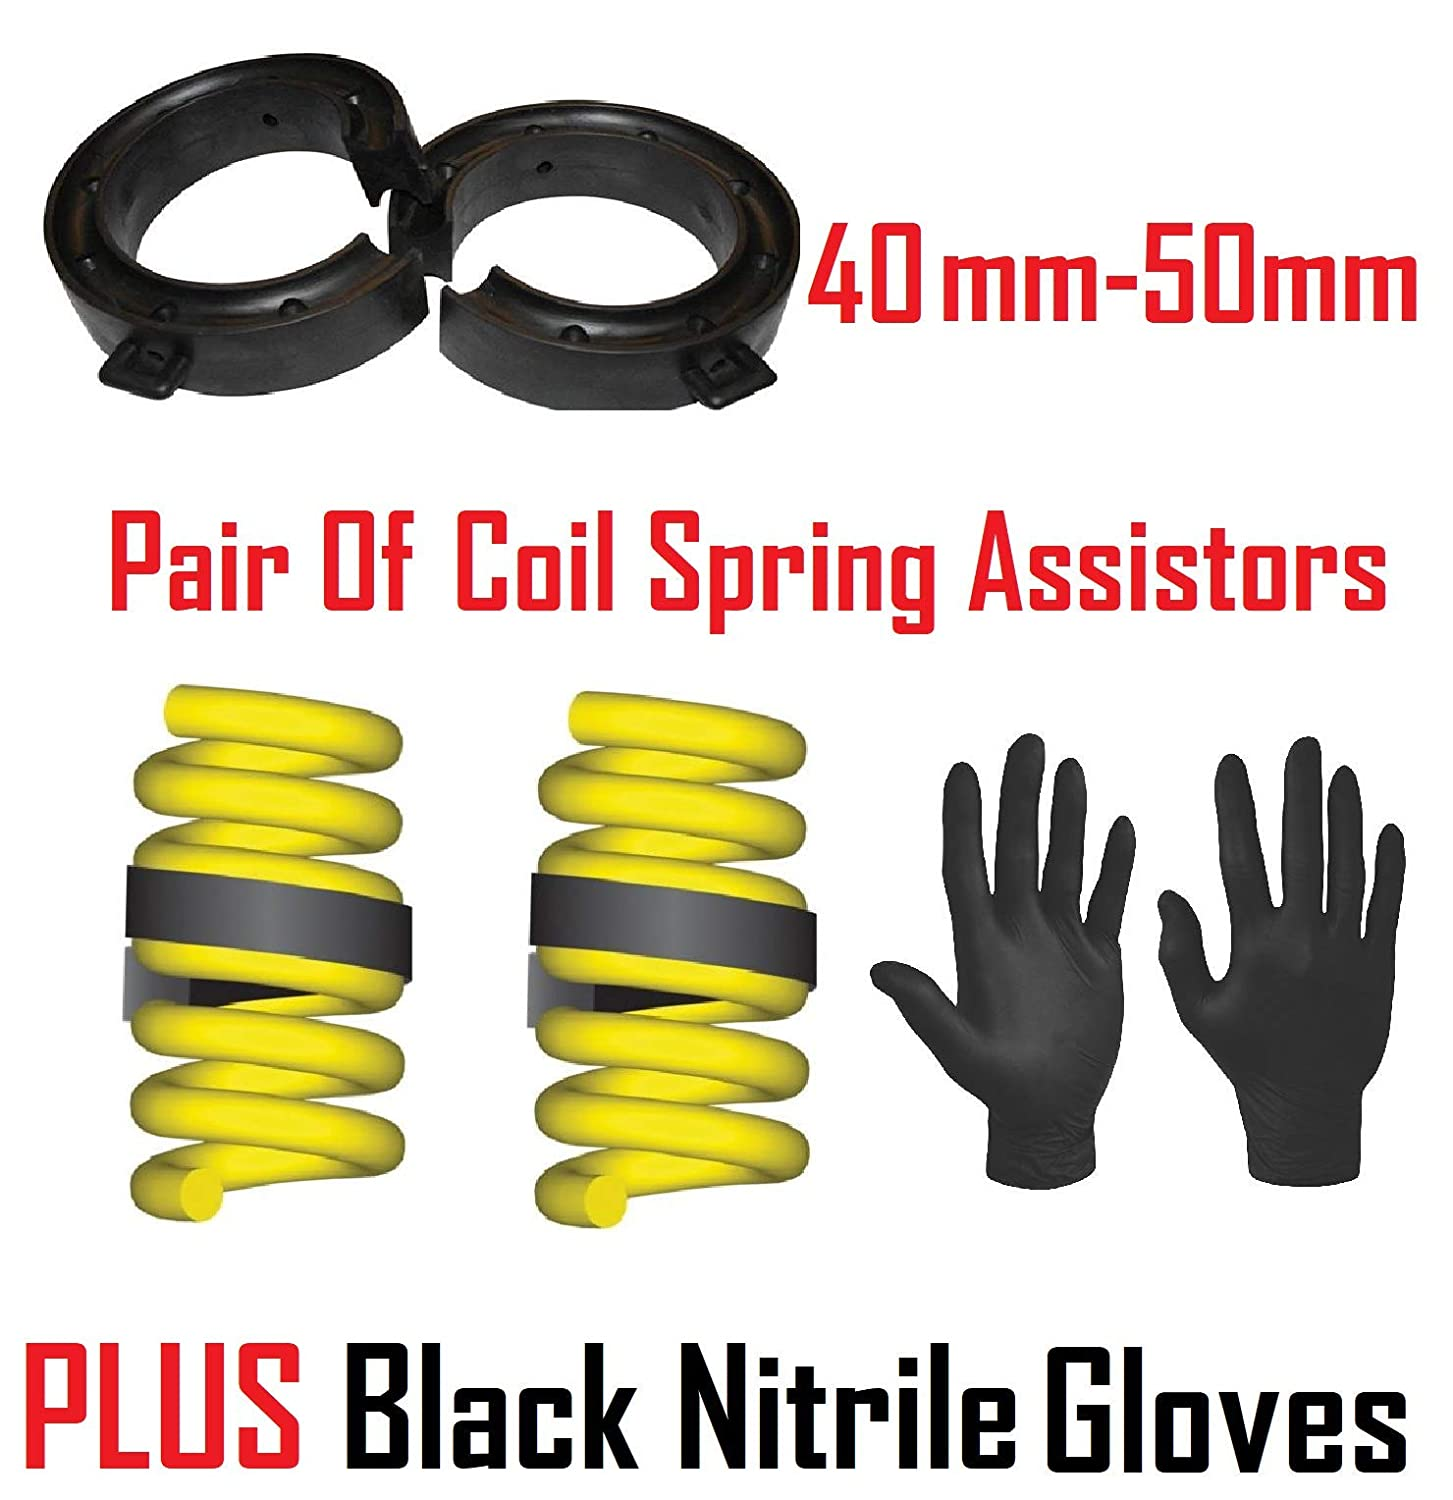 /& Black Nitrile Gloves SW Pair Of Car Coil Spring Assister Kit For Springs With 40-50mm Gap